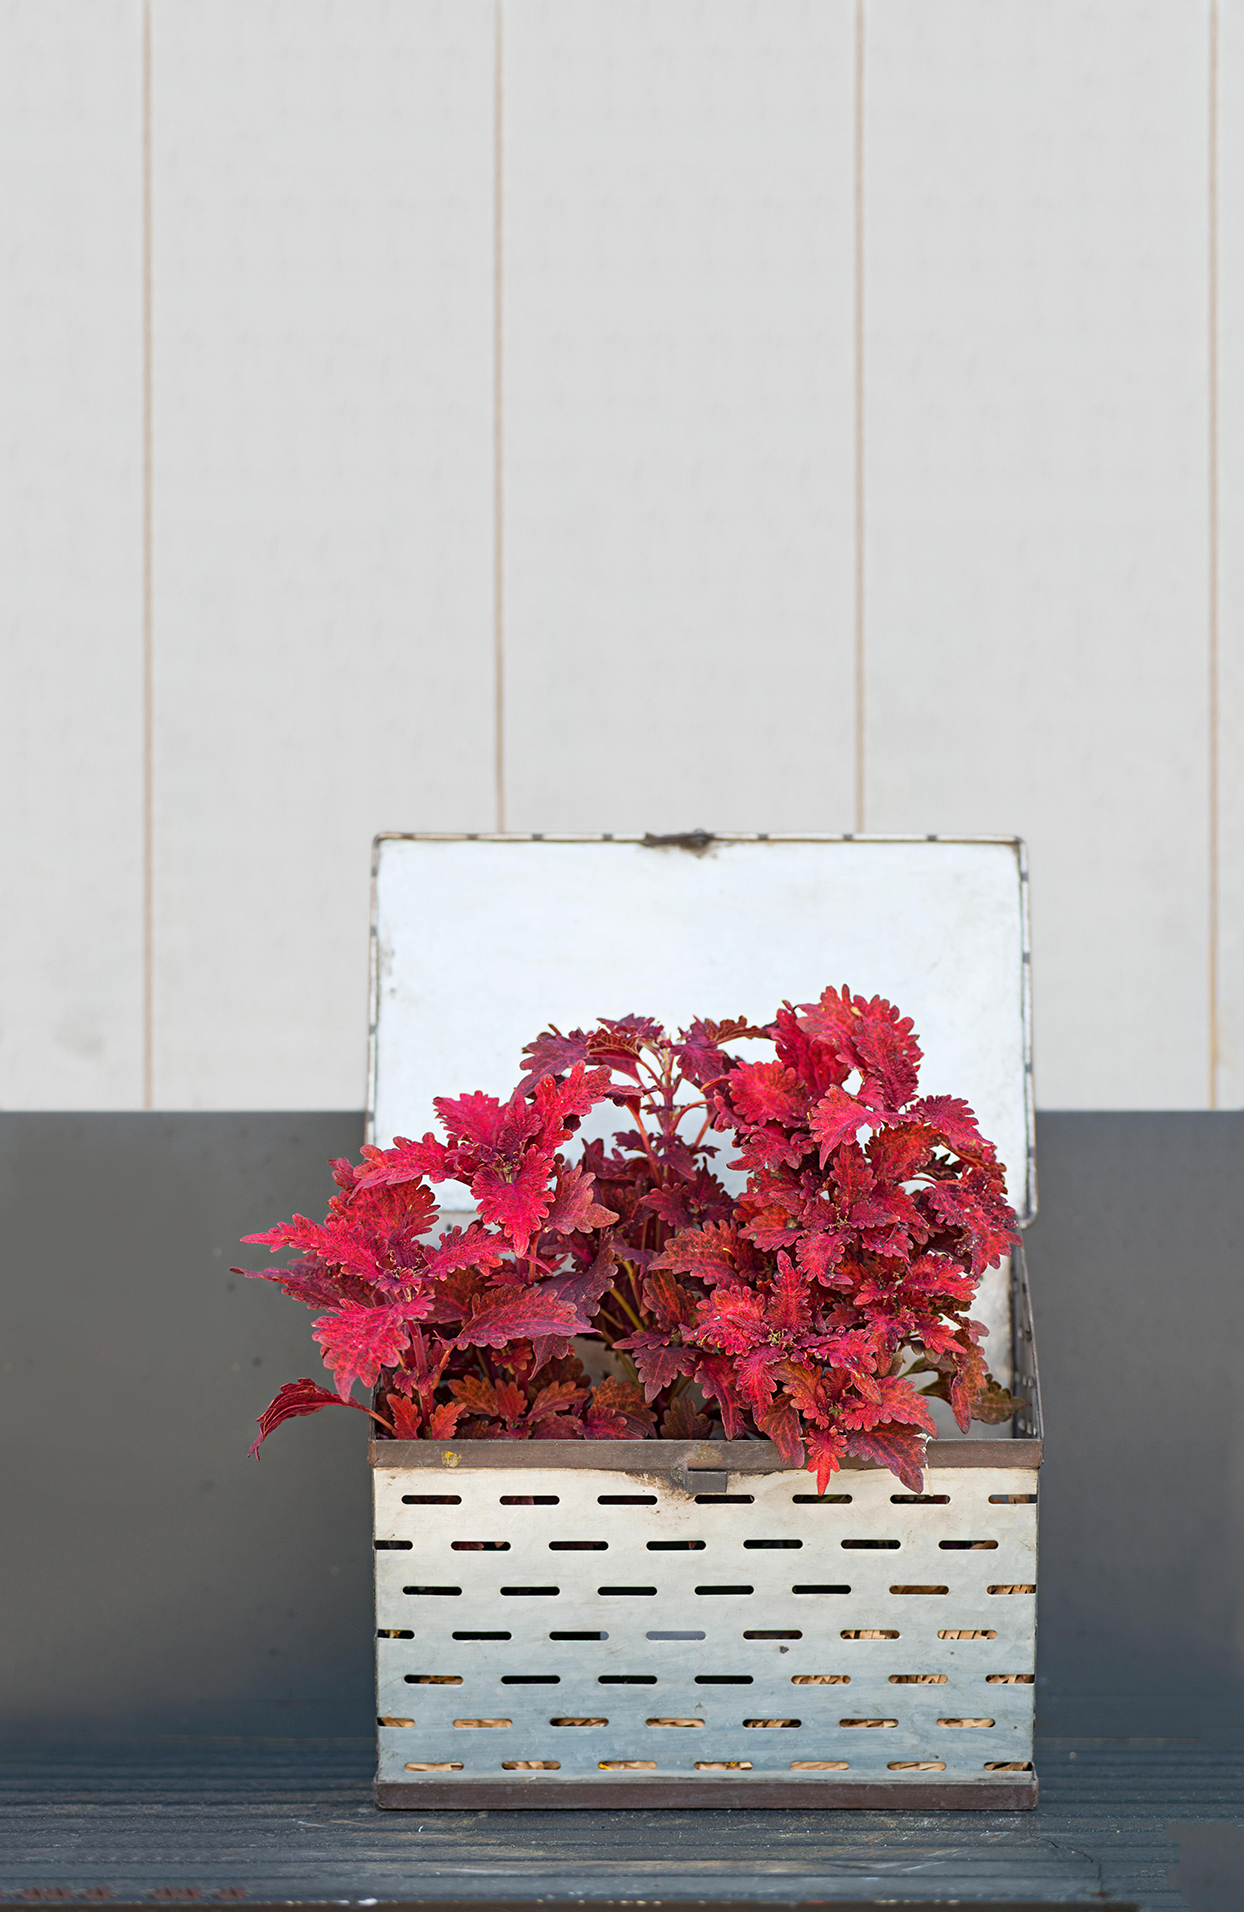 slatted metal box with red plants inside